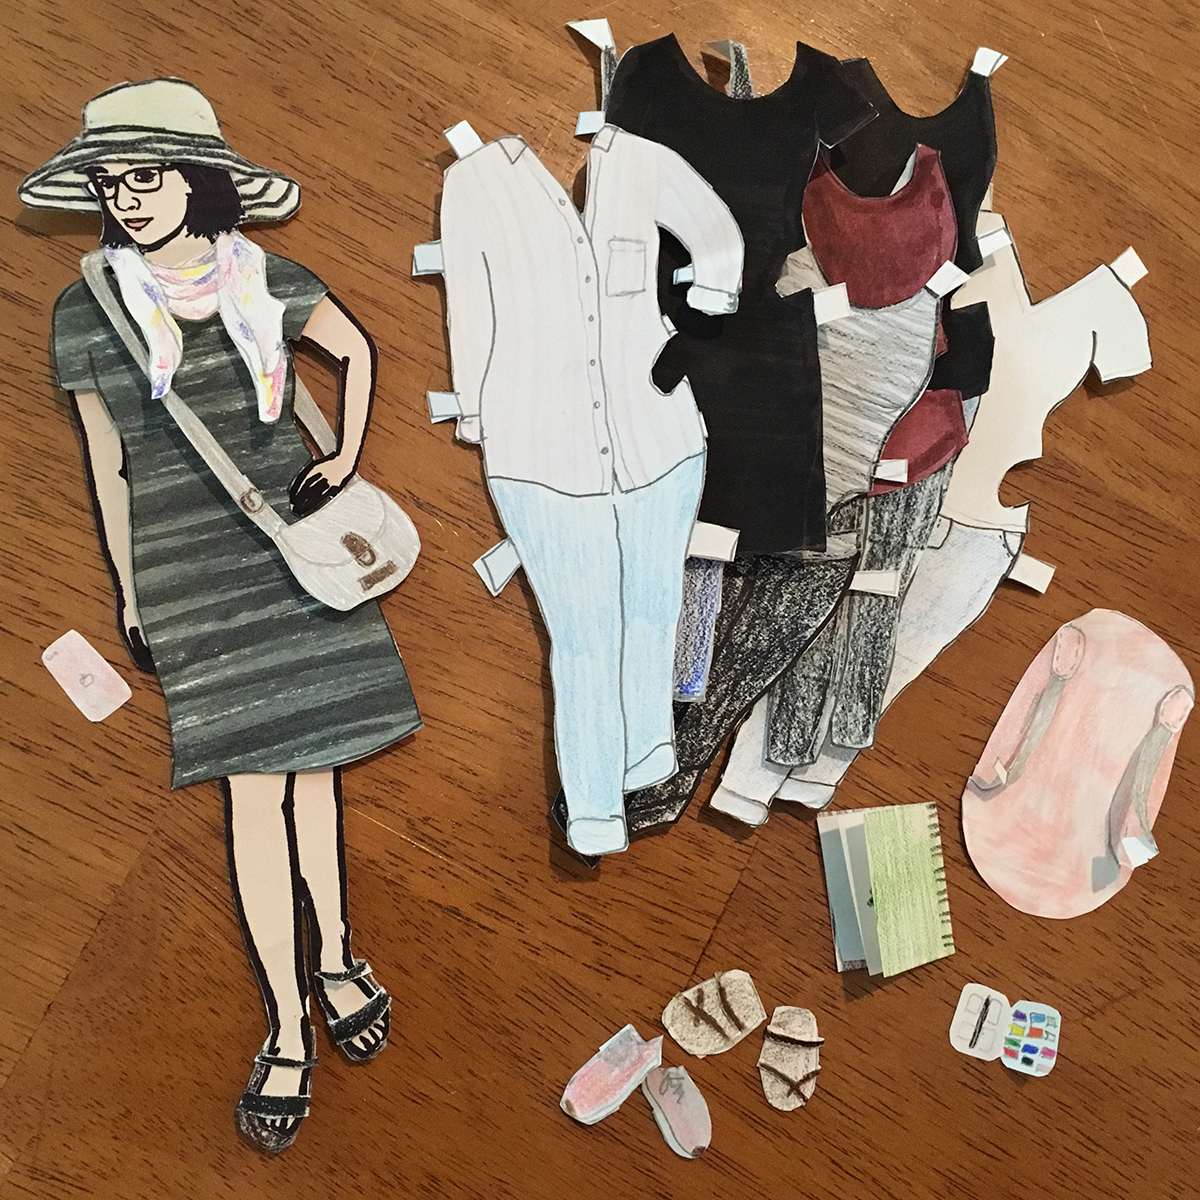 paper doll of the artist with full set of paper clothing and accessories, including 8 outfits, 3 sets of shoes, purse, scarf, sunhat, iphone, backpack, sketchbook, and paint set.